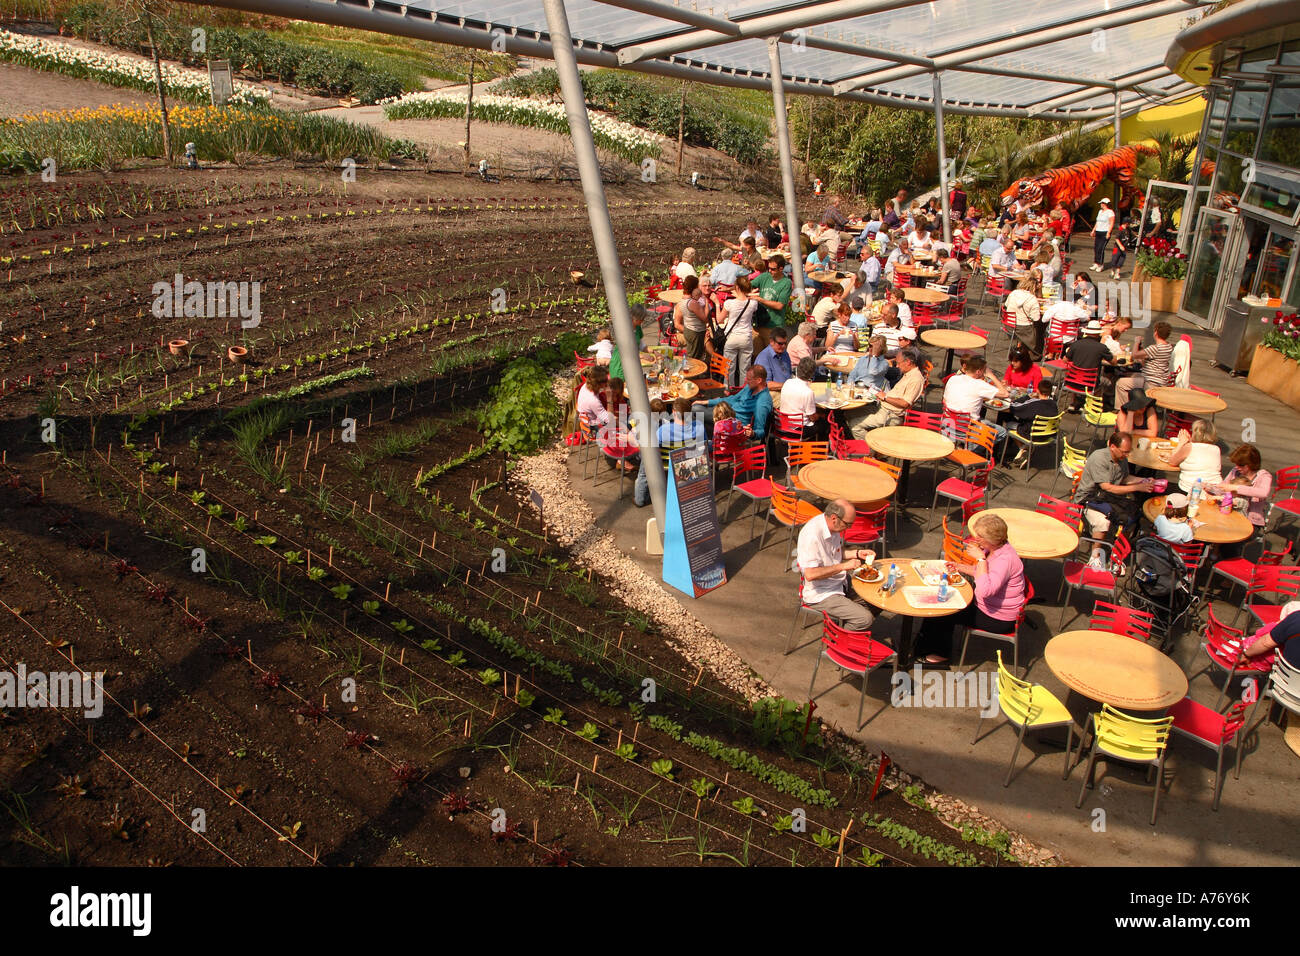 The Eden Project Cornwall open air cafe dinning area alongside fresh ...